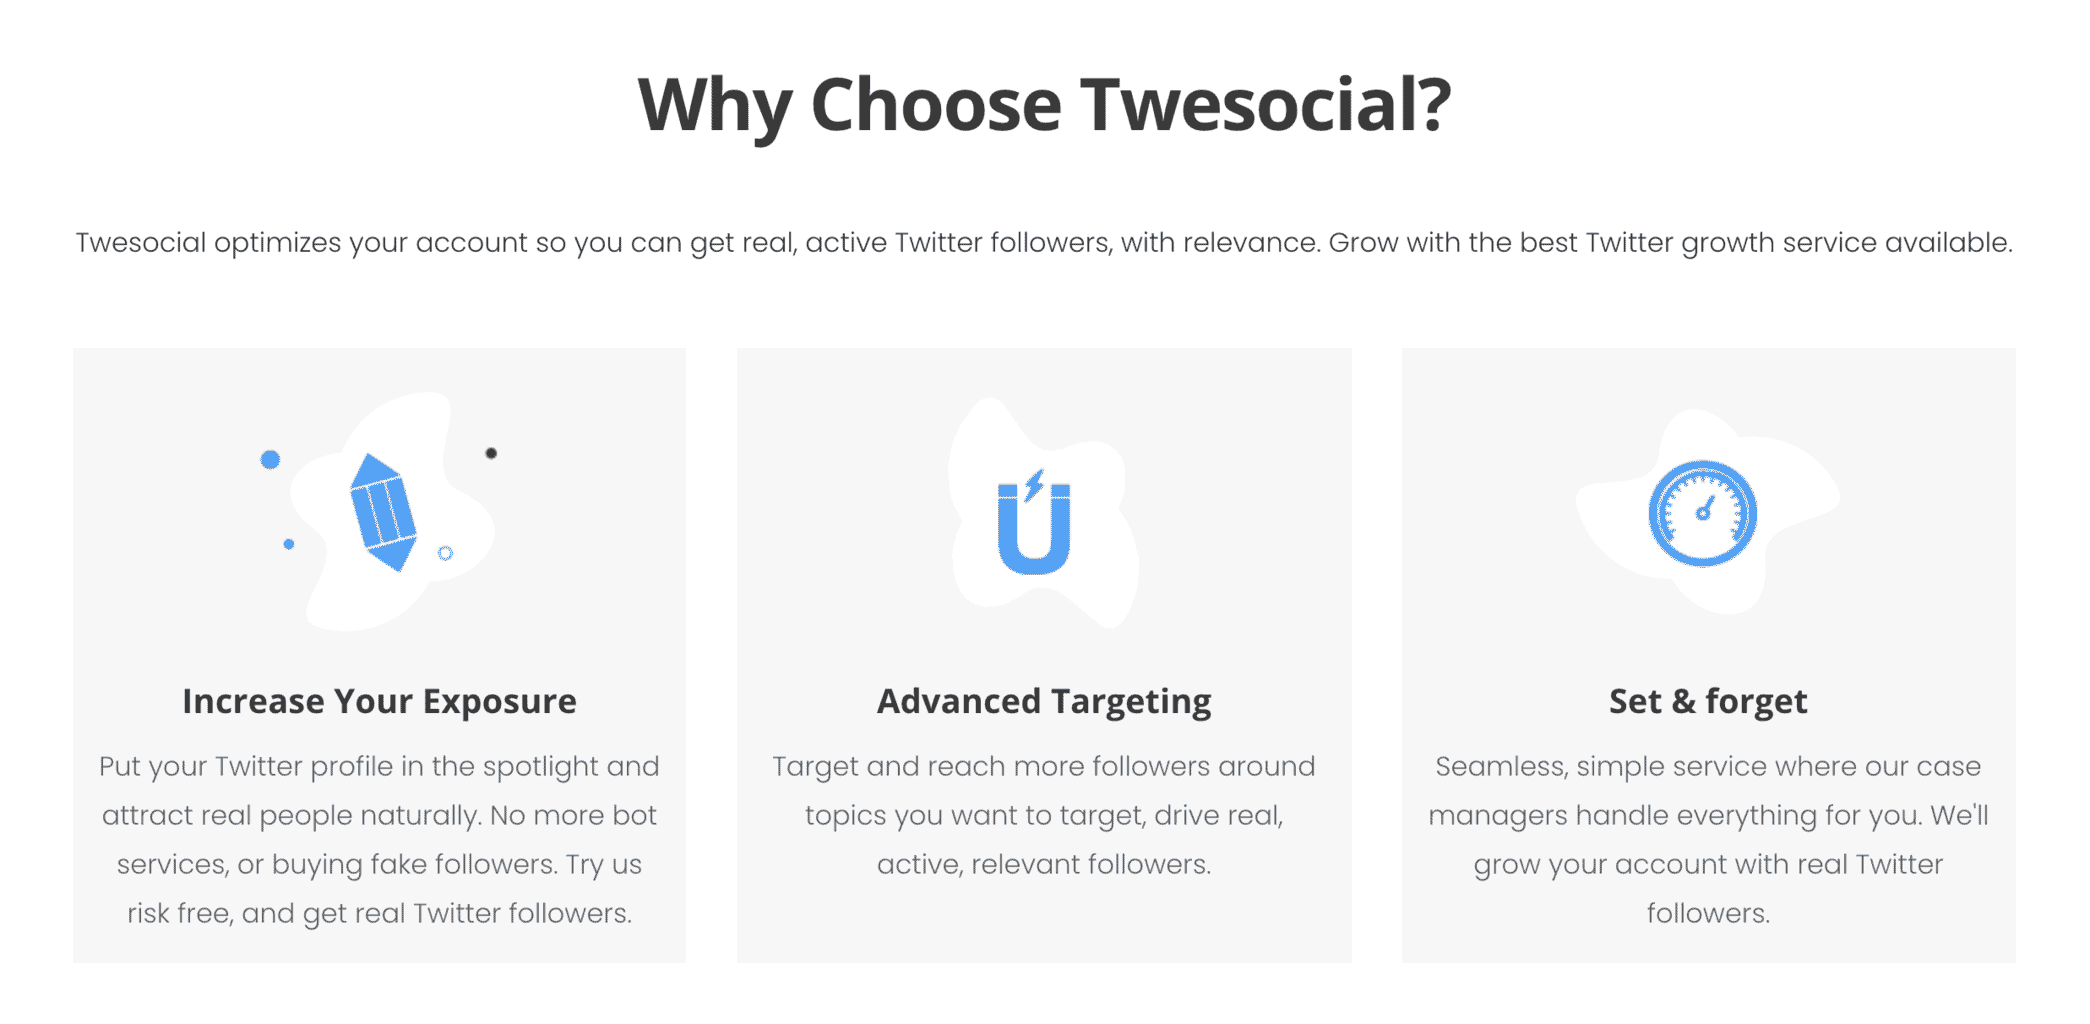 twesocial twitter growth management service